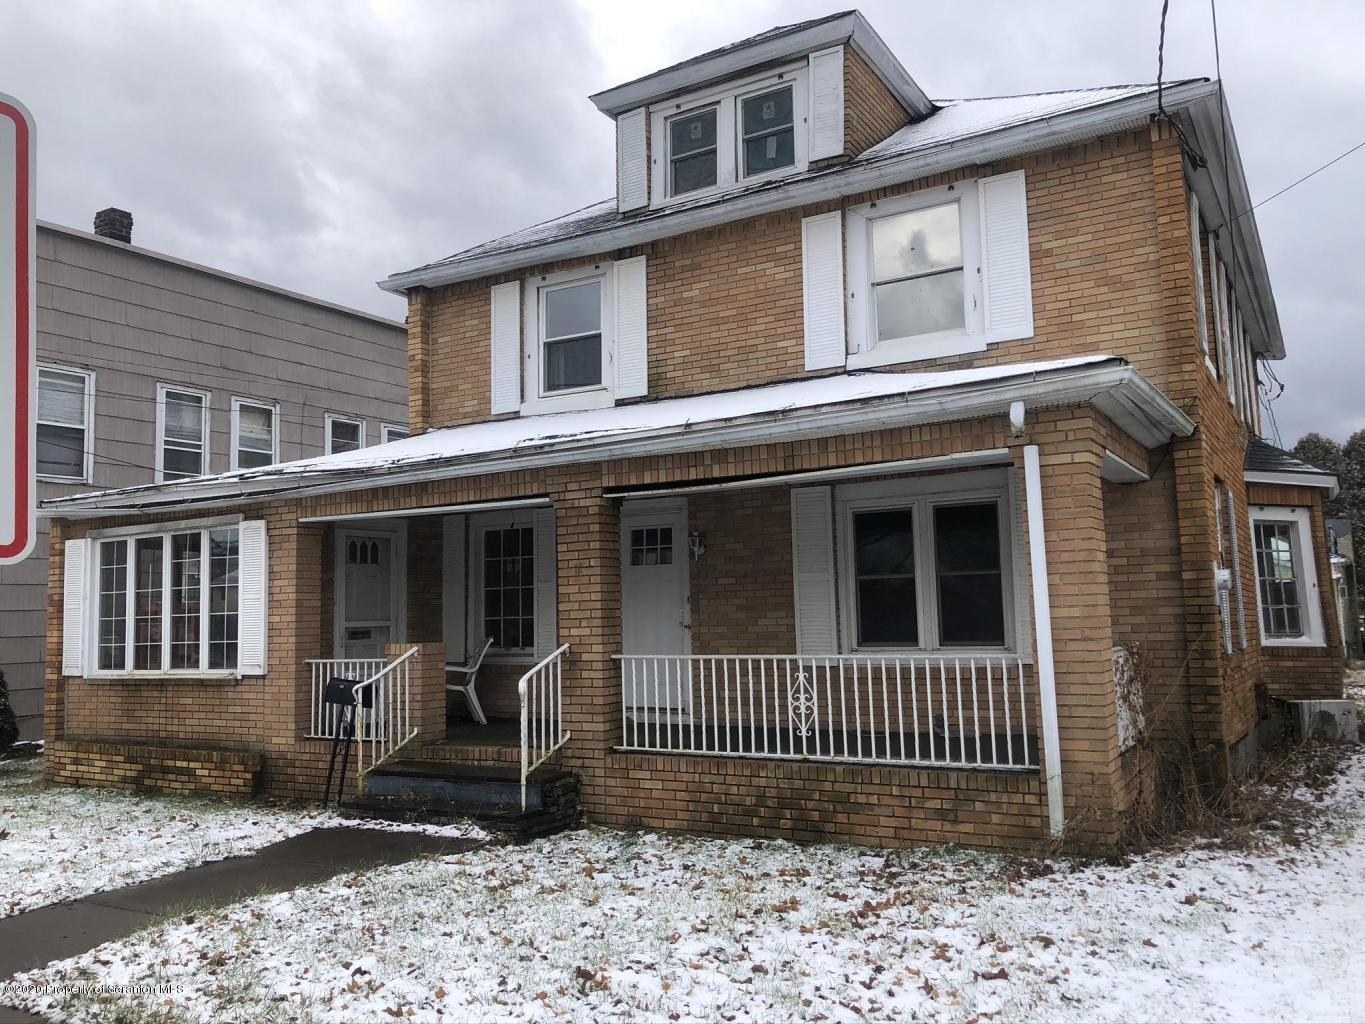 612 Poplar St, Mayfield, Pennsylvania 18433, 4 Bedrooms Bedrooms, 8 Rooms Rooms,2 BathroomsBathrooms,Single Family,For Sale,Poplar,20-4898